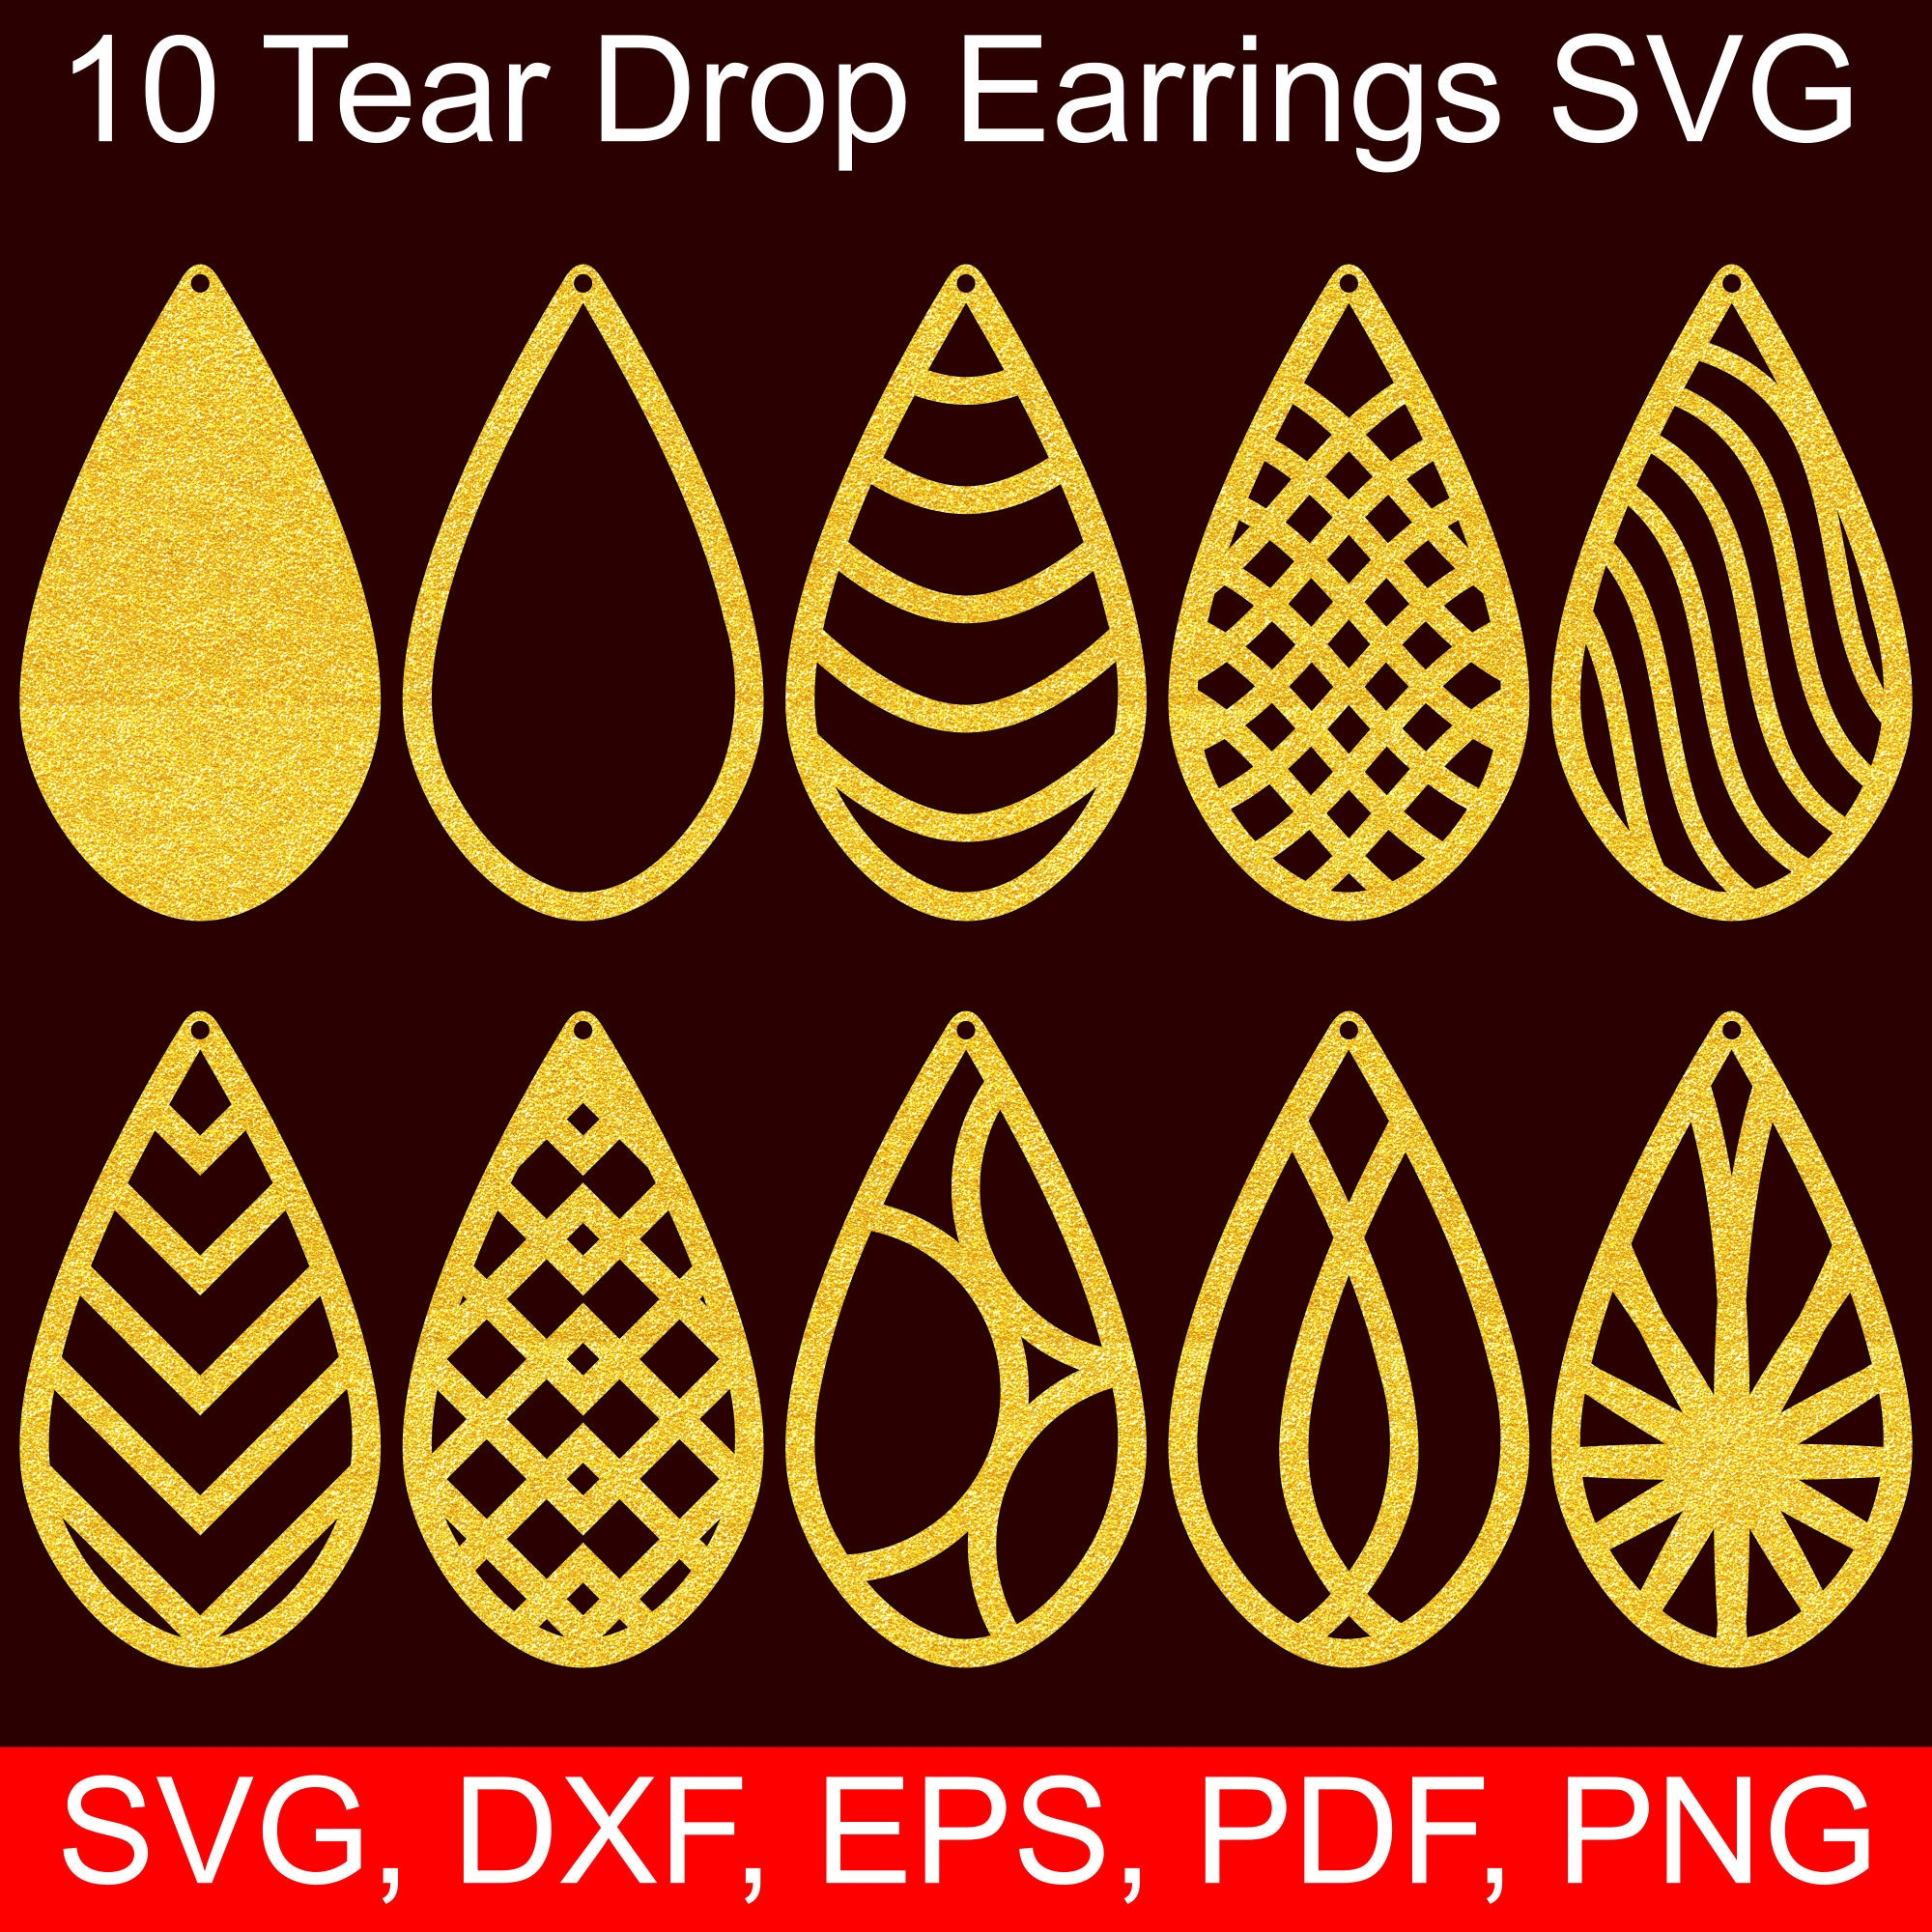 Download 5 Earrings SVG templates to make beautiful DIY faux ...